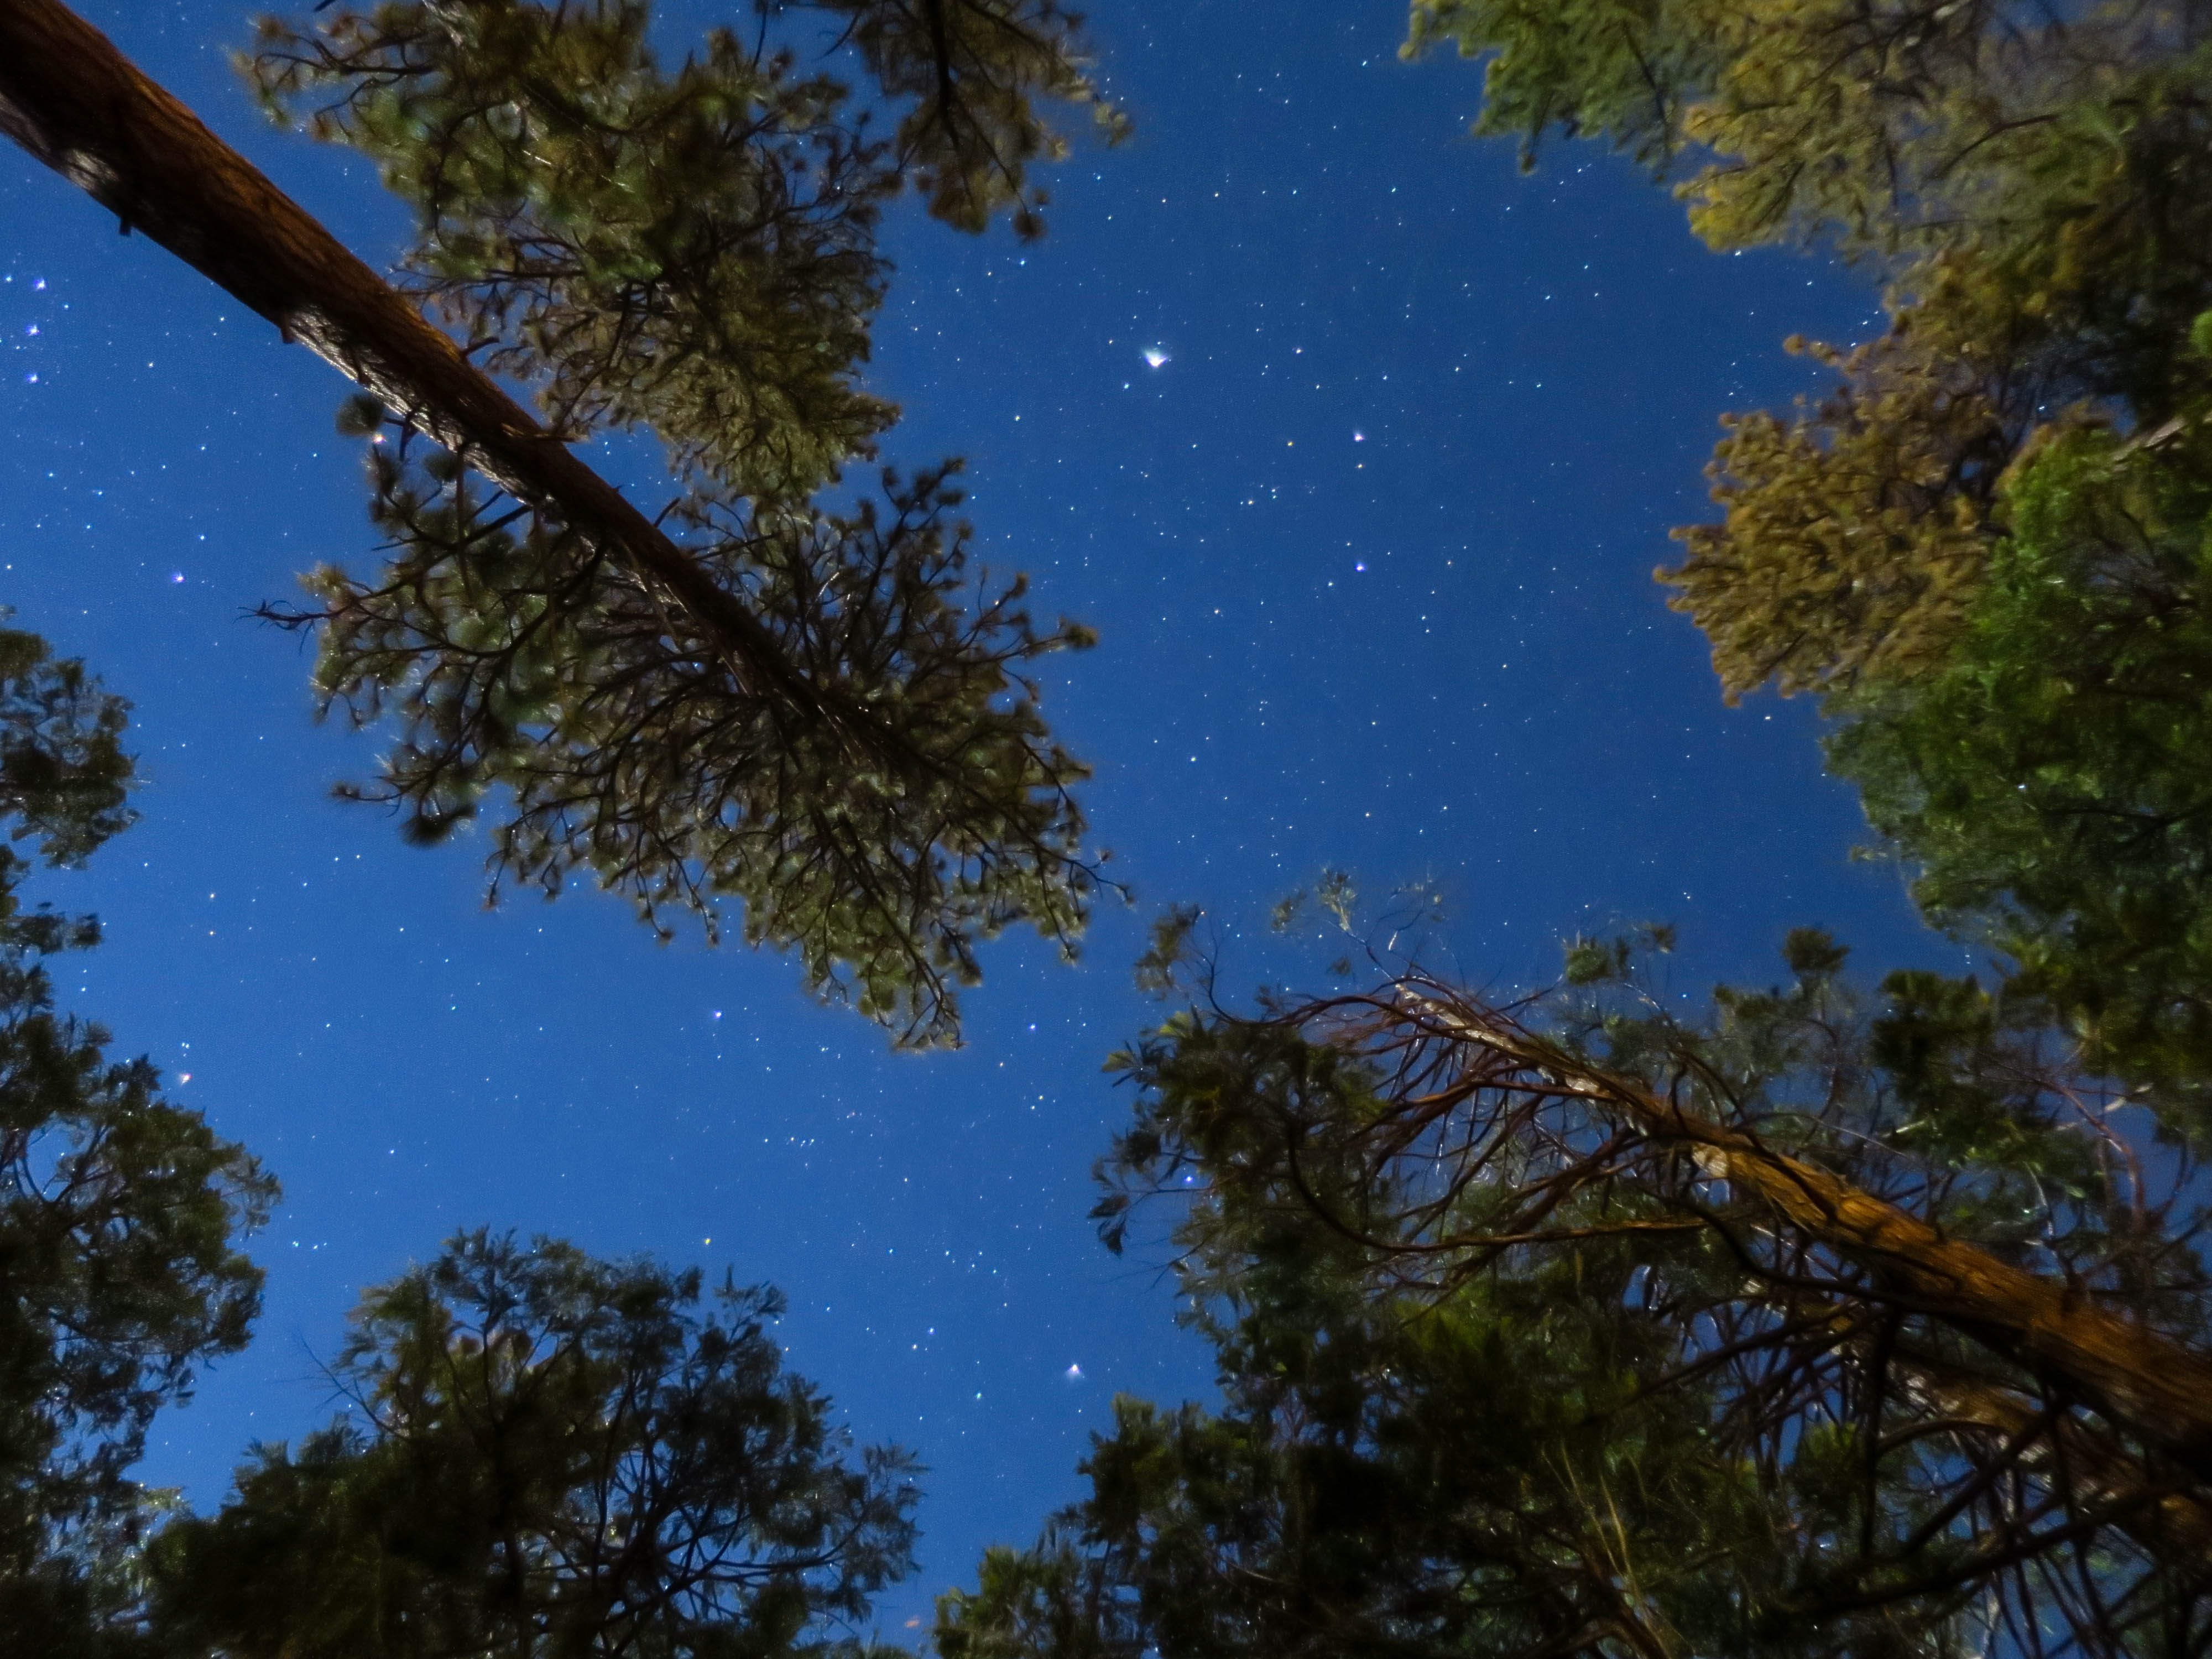 Idyllwild Night Sky